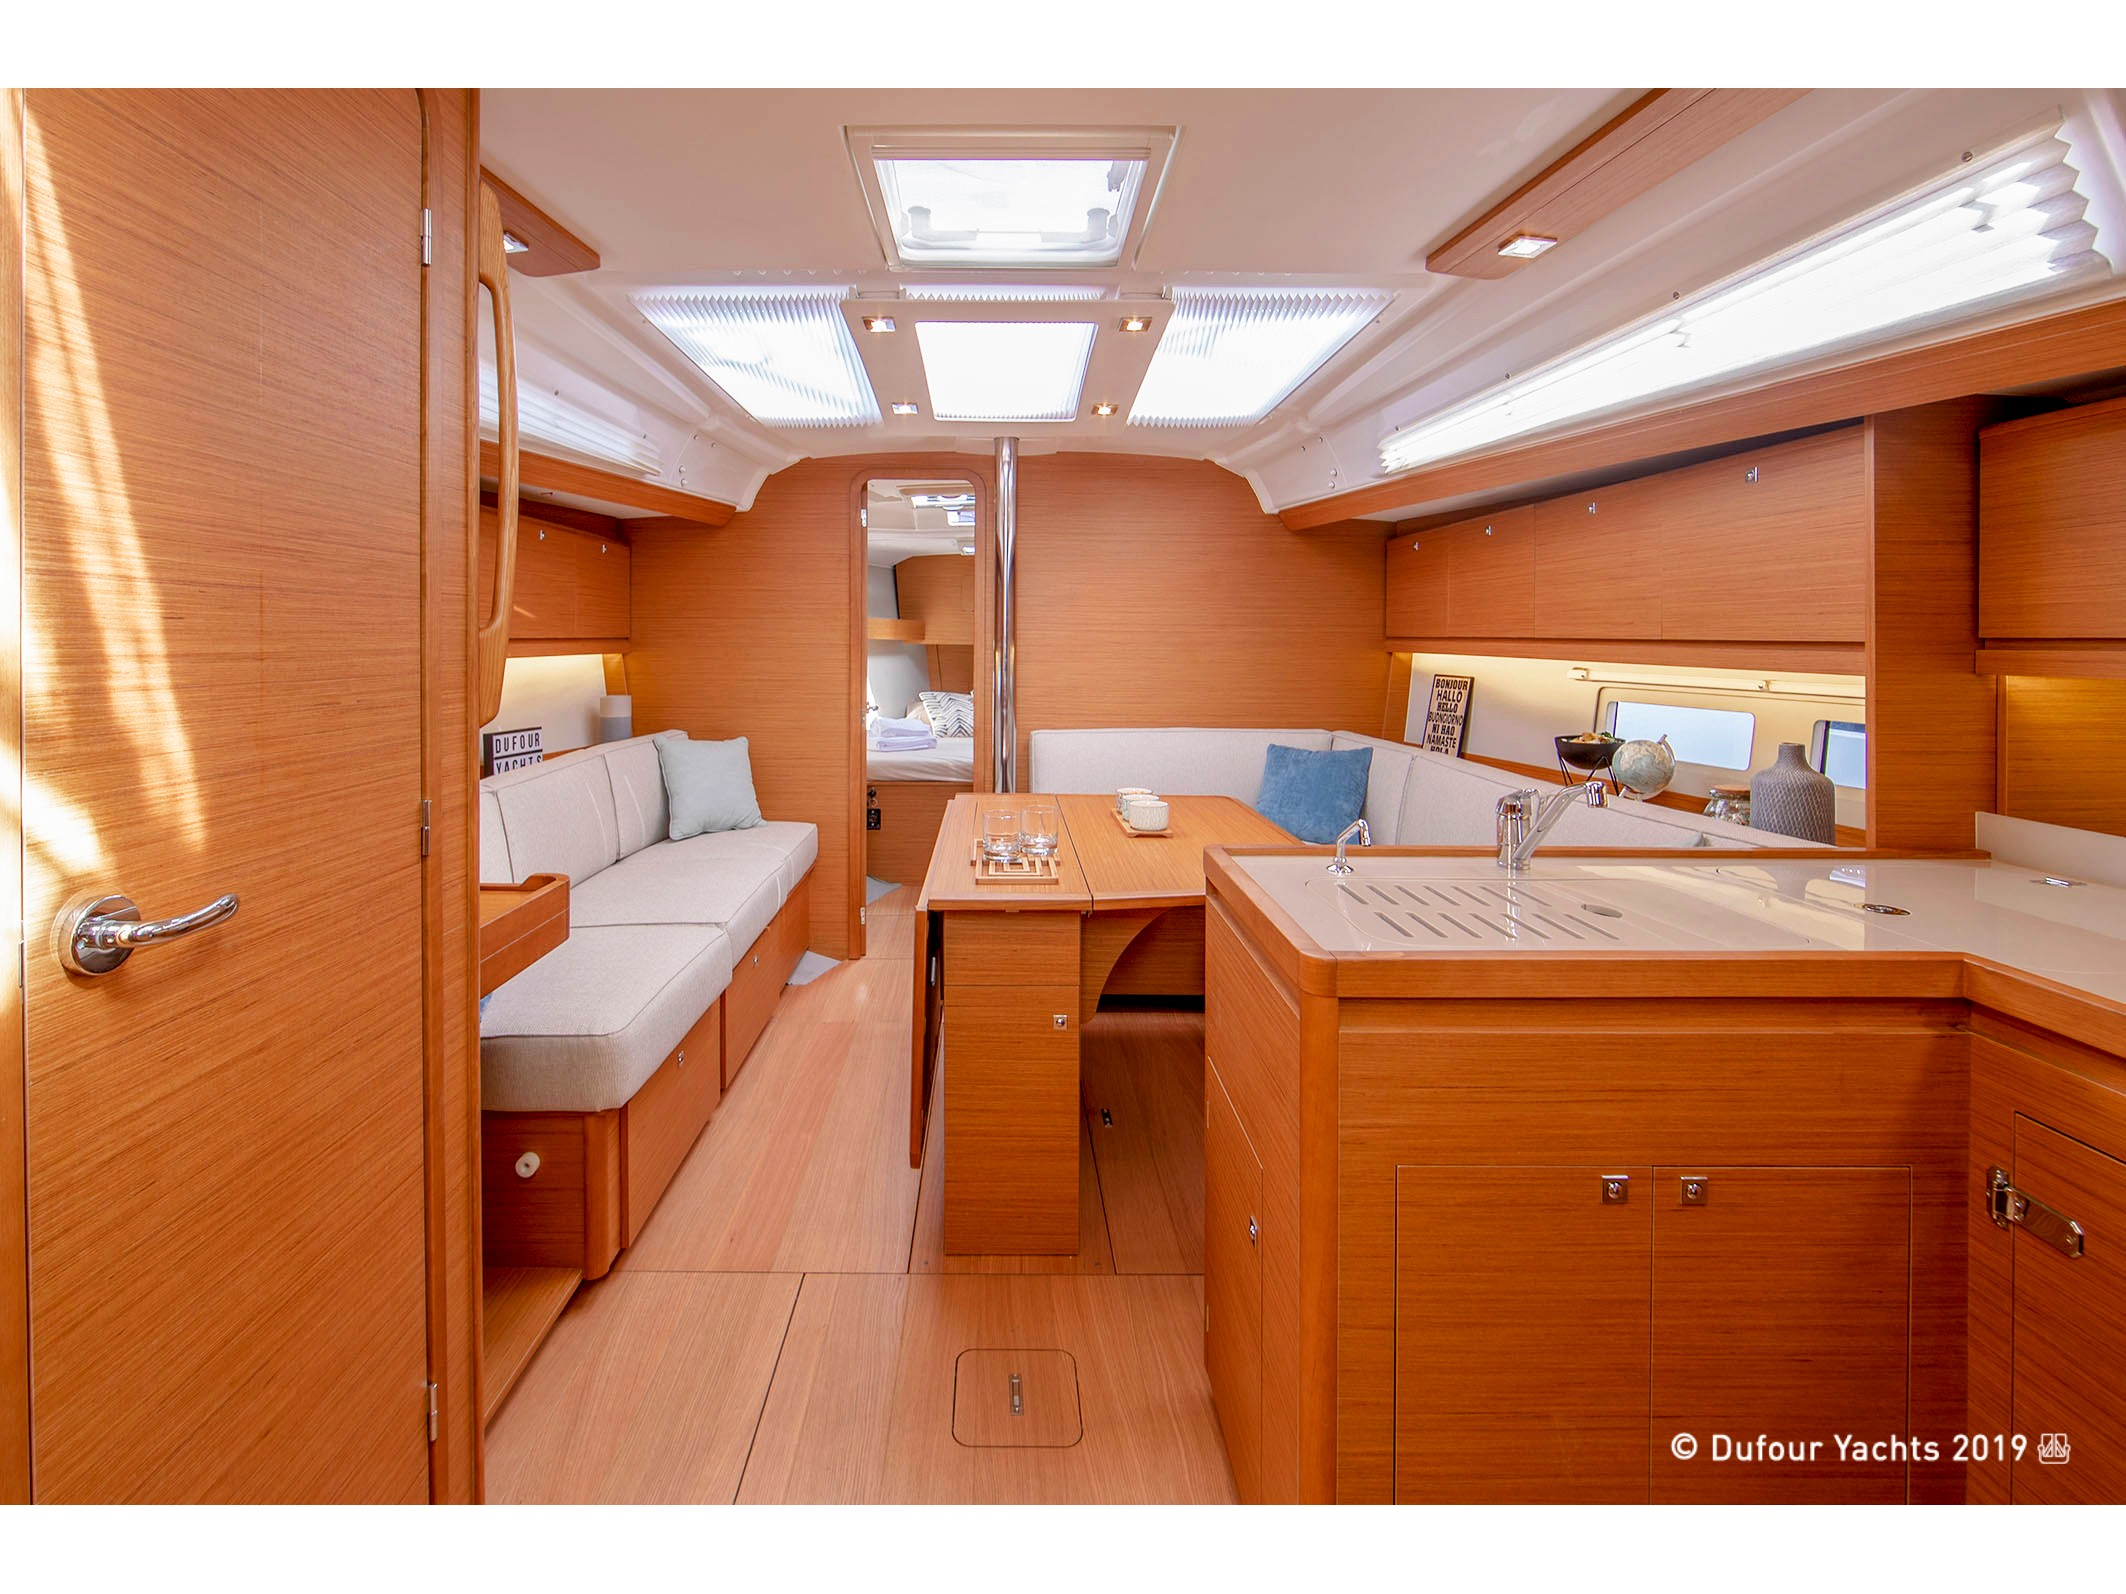 Dufour 390 Grand Large (Orsalia) Interior image - 2